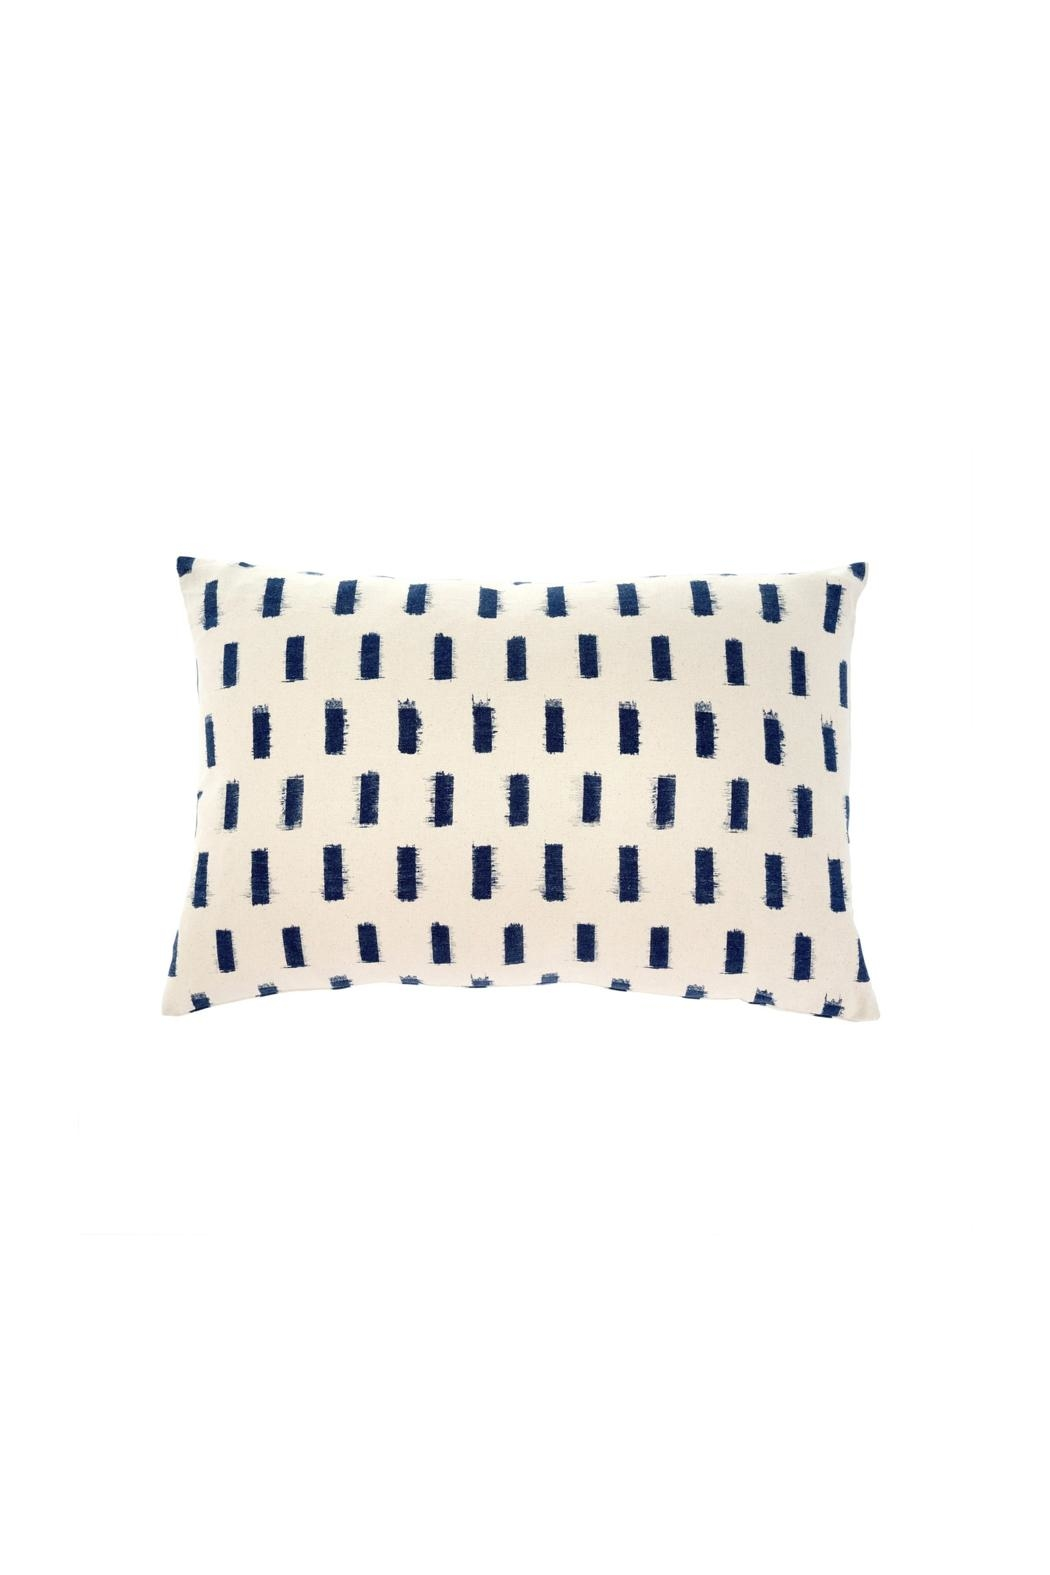 Indaba Dash Ikat Pillow From Canada By Mountain Home Decor Shoptiques